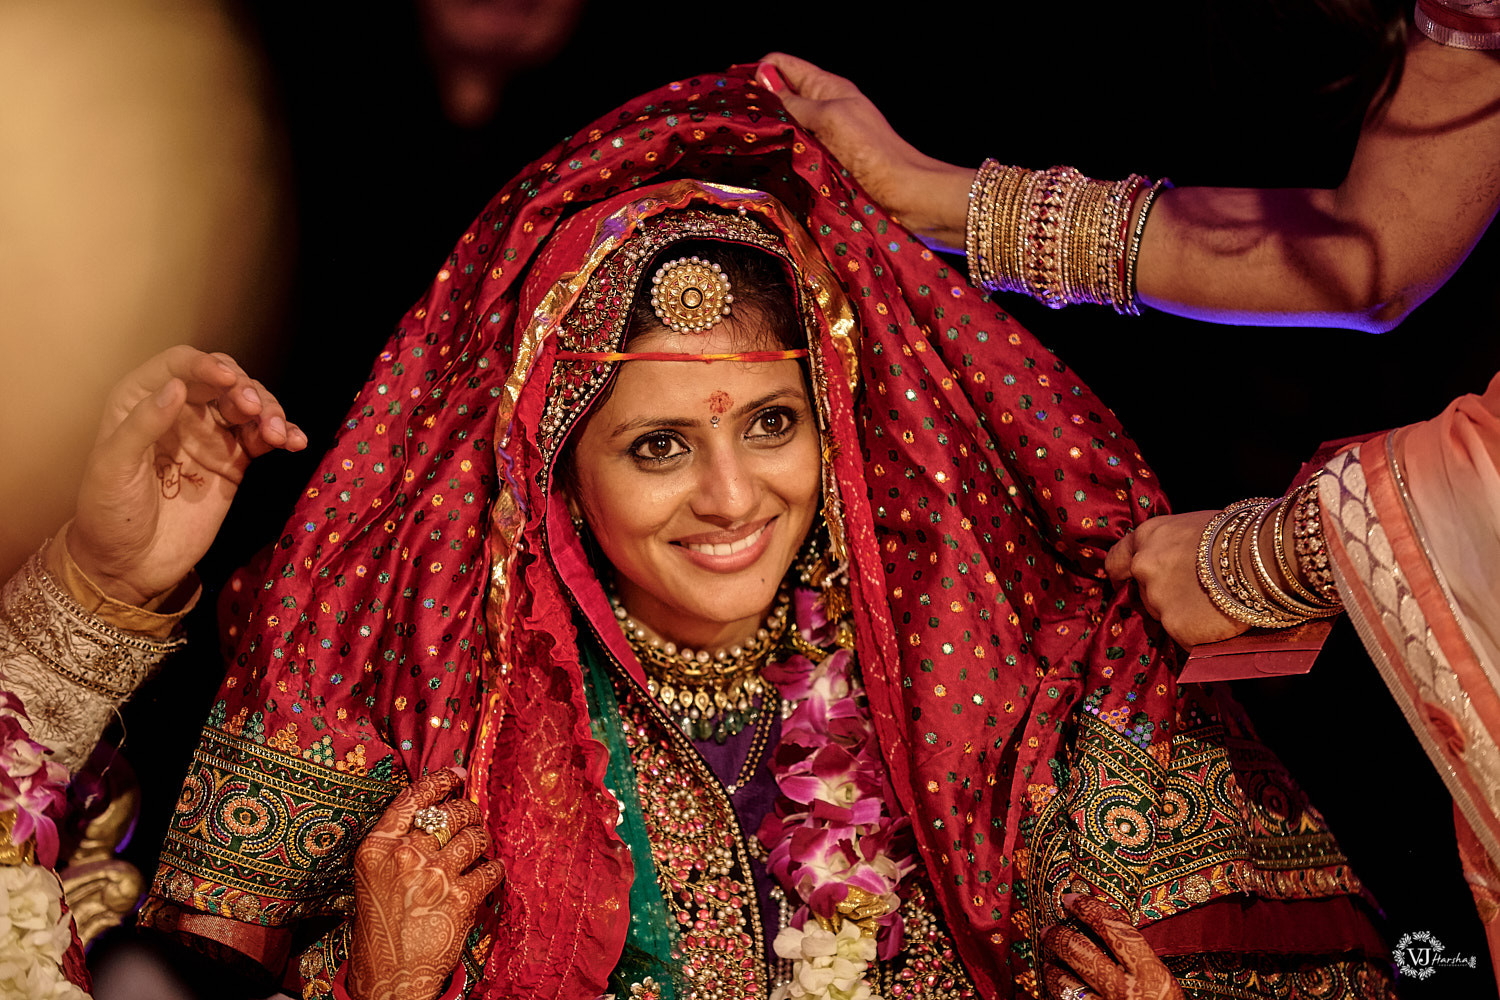 Vjharsha-photography-Your-wed-stories-Ud